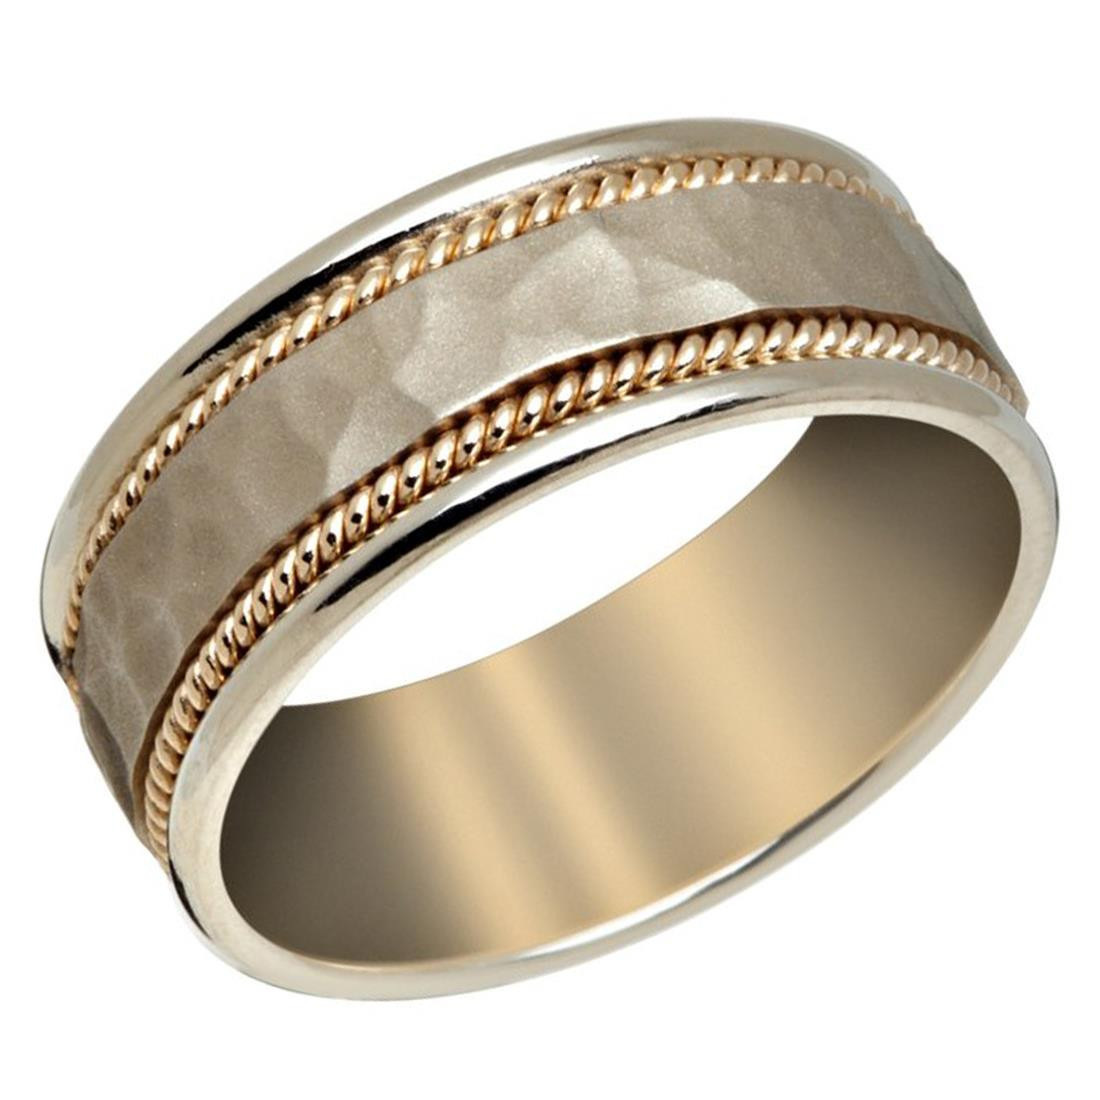 Mens 8 Mm White Gold Band With Satin Hammered Finish Center And Yellow Milgrain Detailing P 038